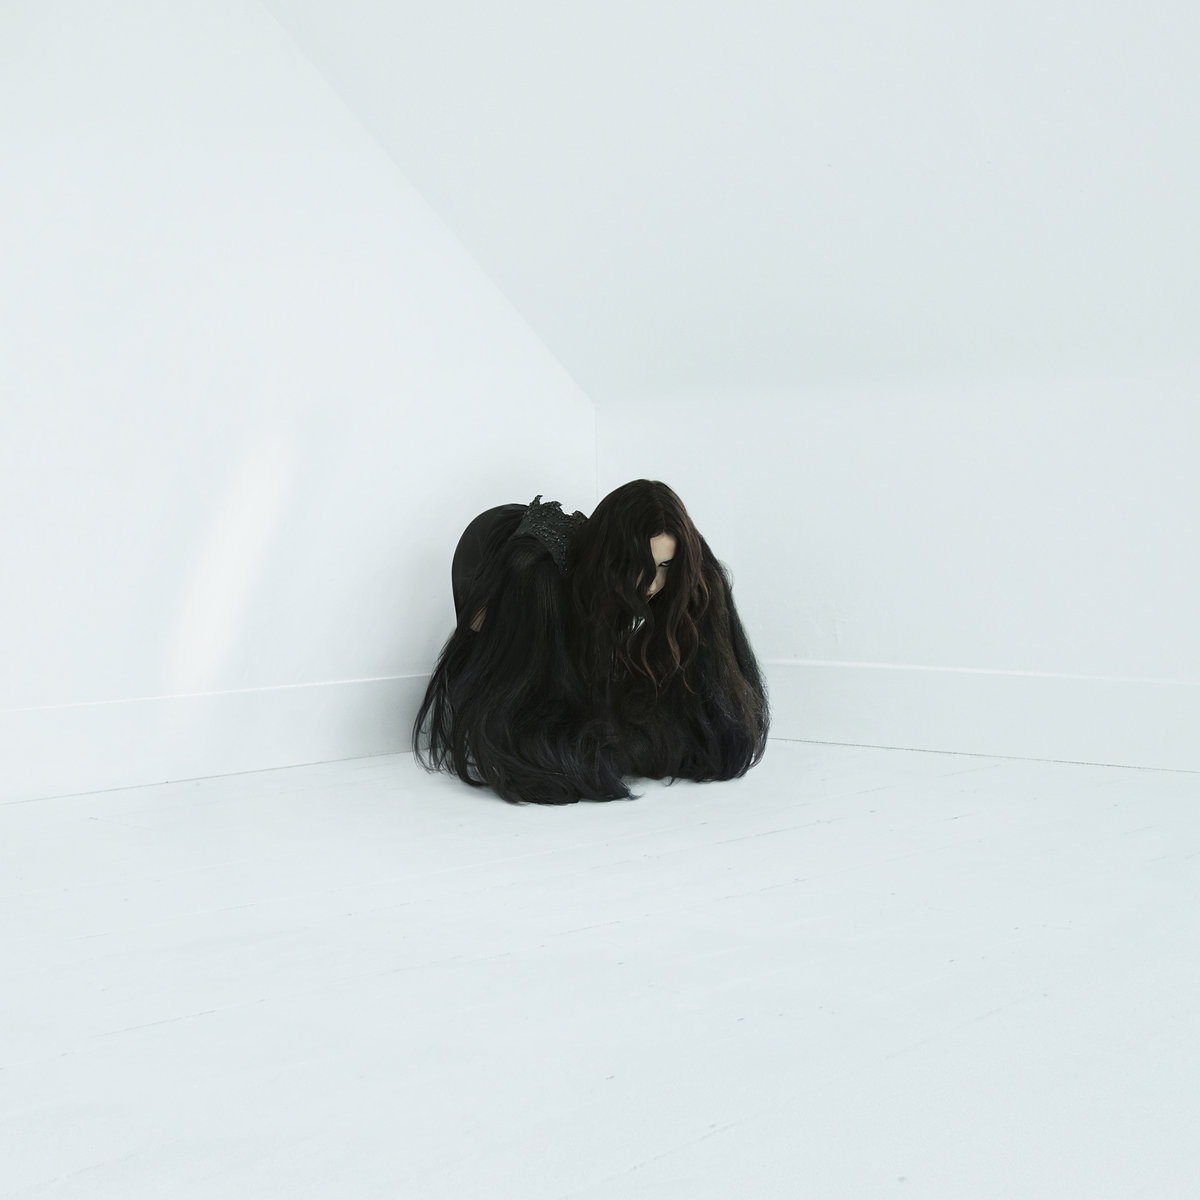 Music and video in perfect harmony: the new video by Chelsea Wolfe